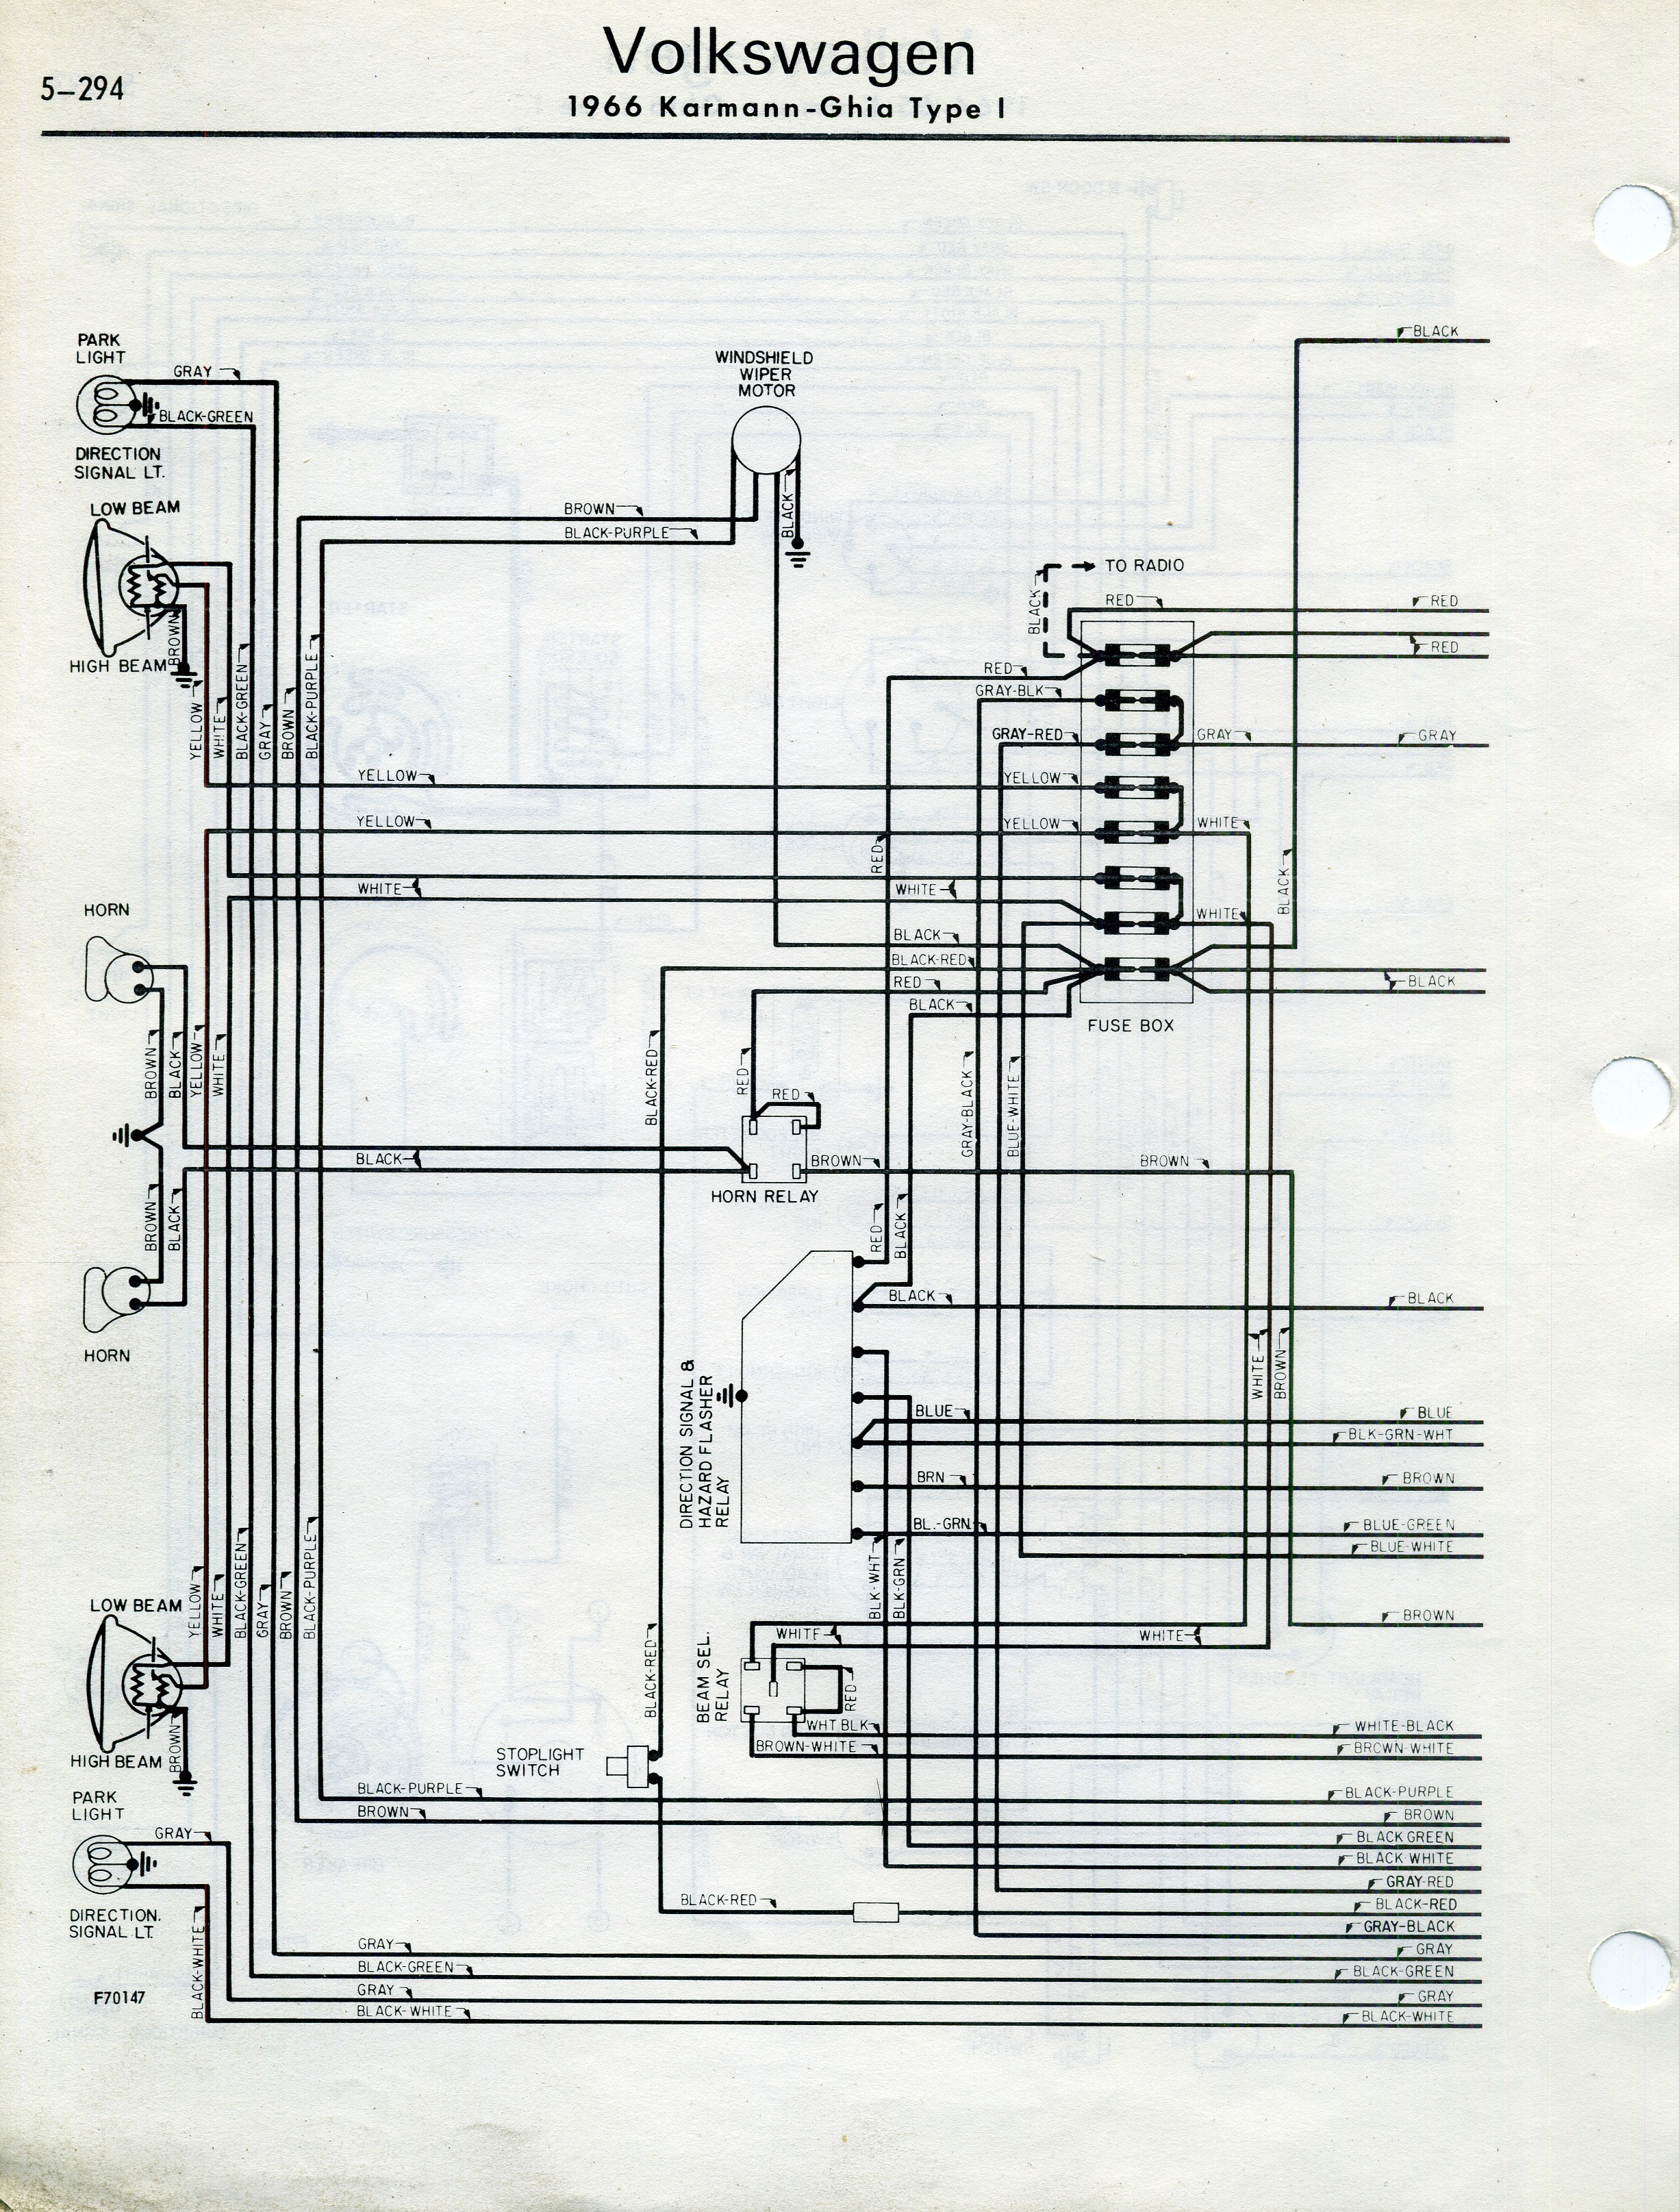 1971 vw karmann ghia wiring diagram